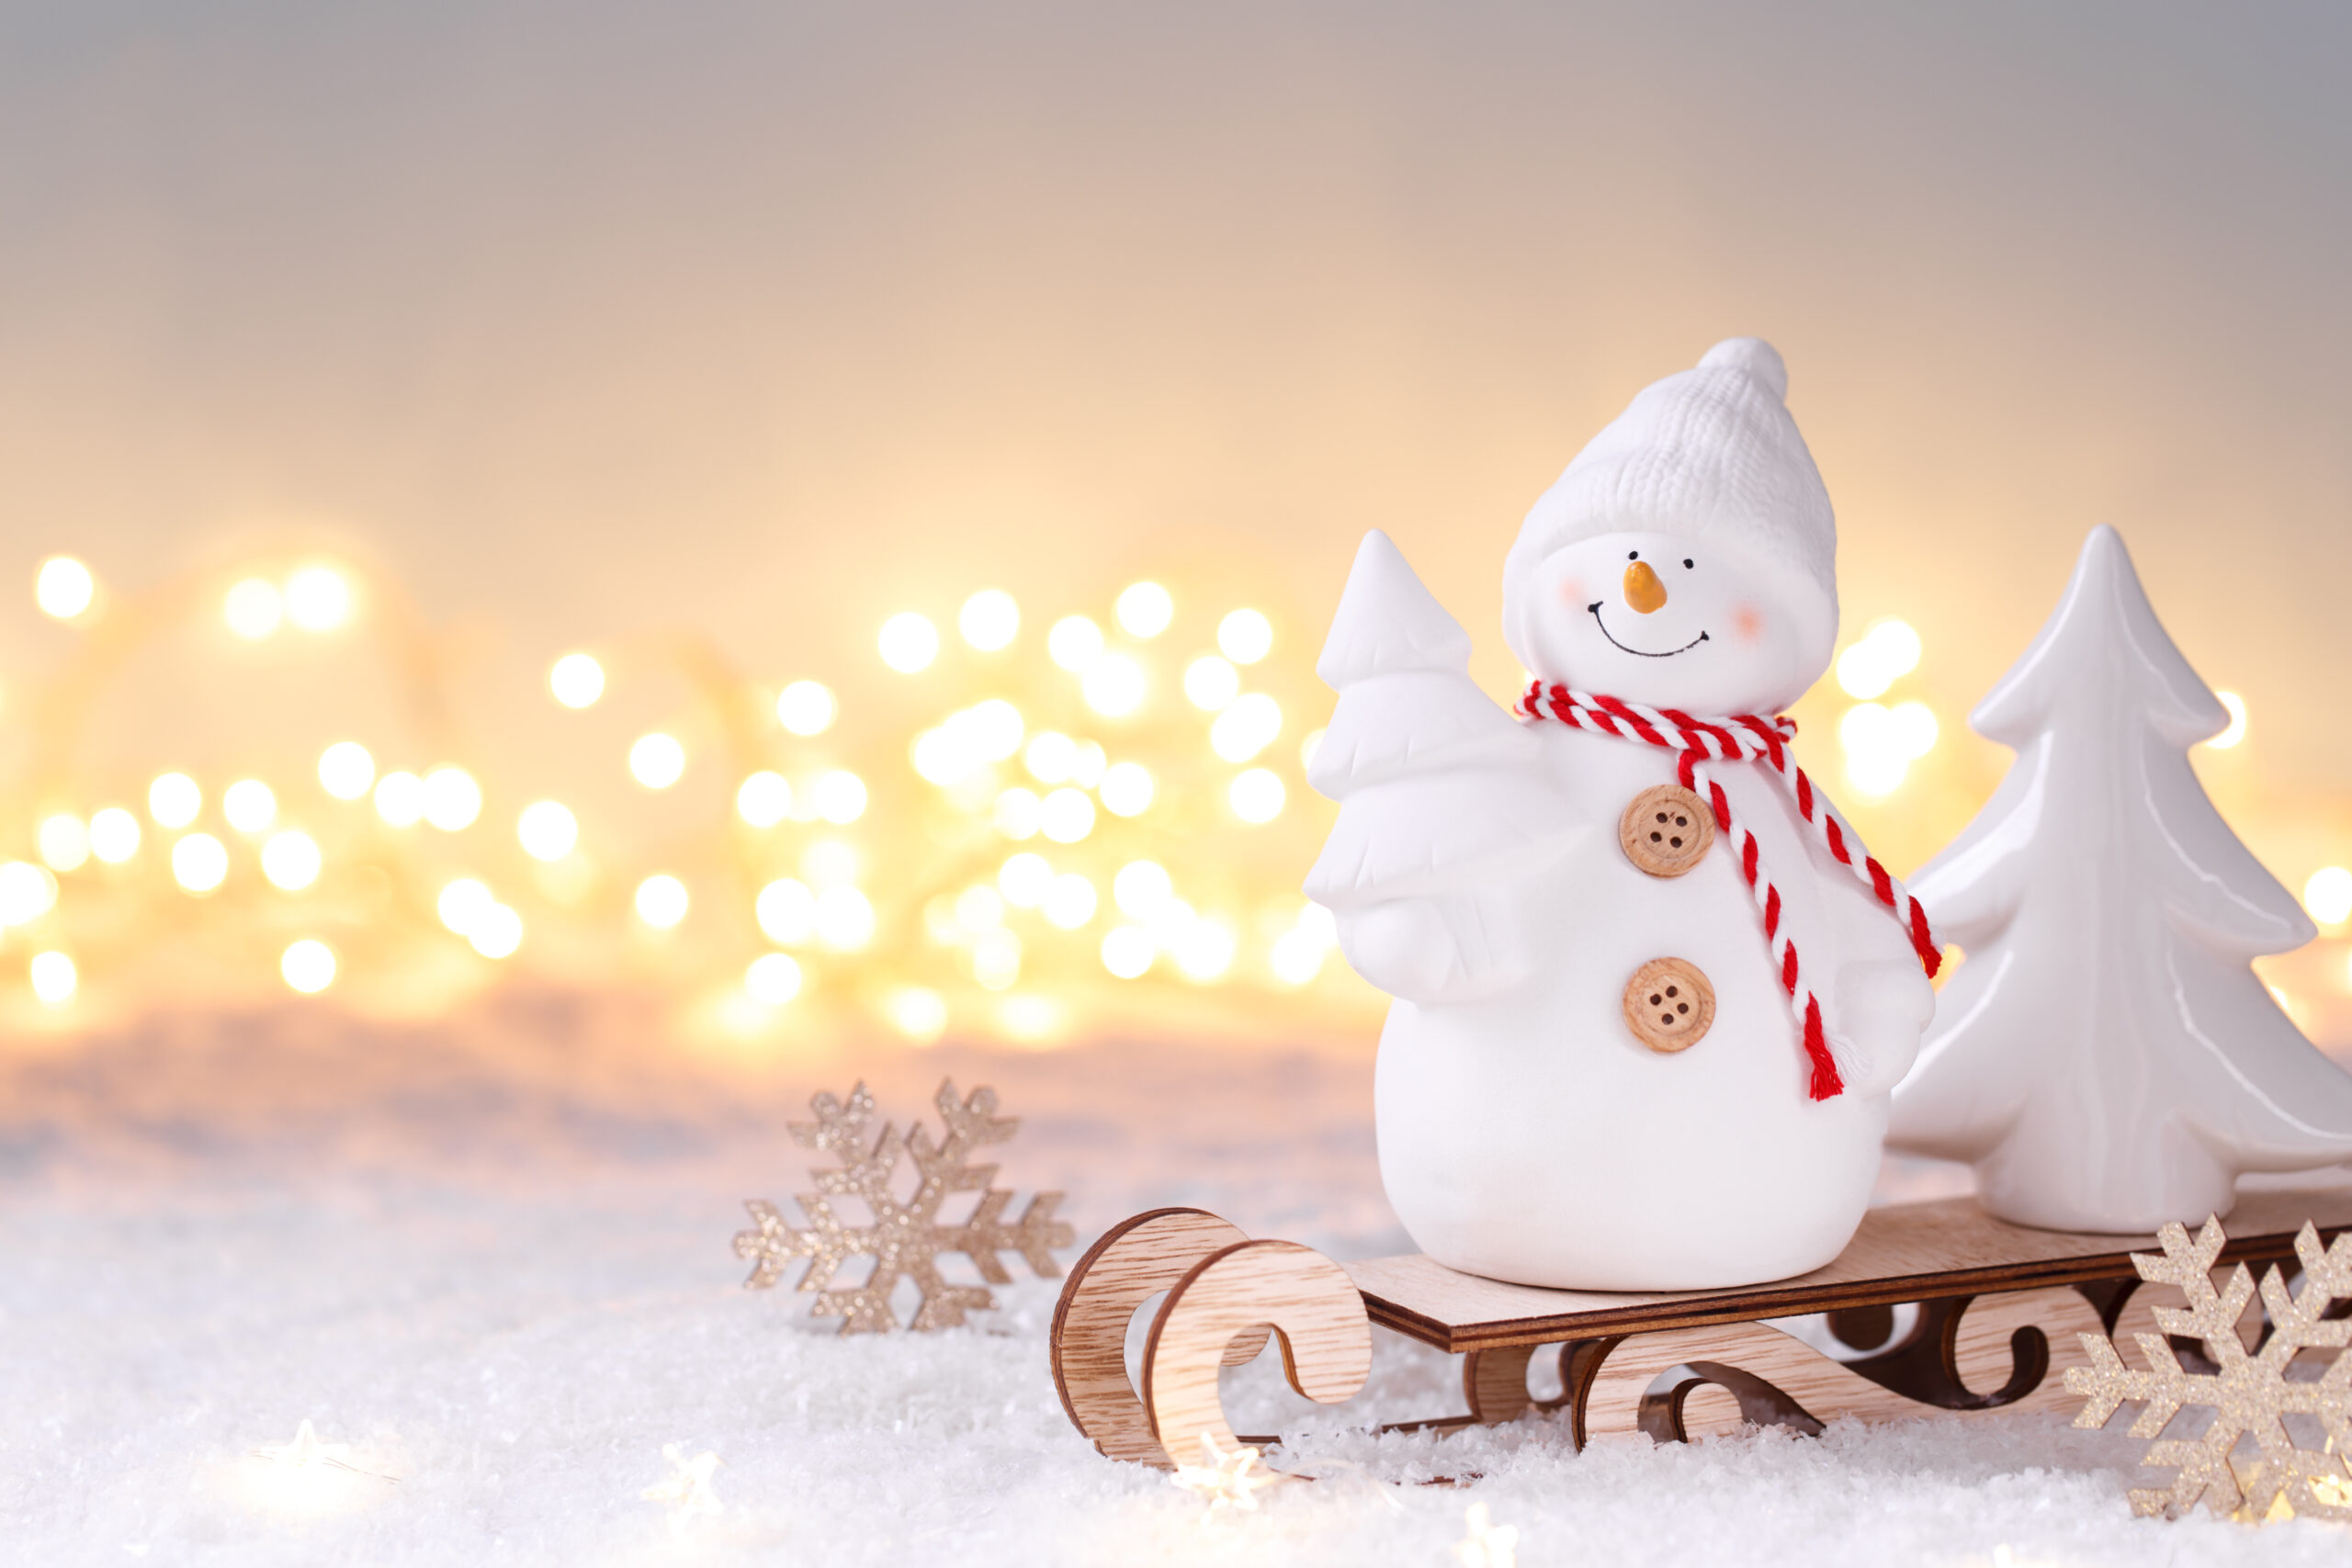 Snowman toy on the sledge